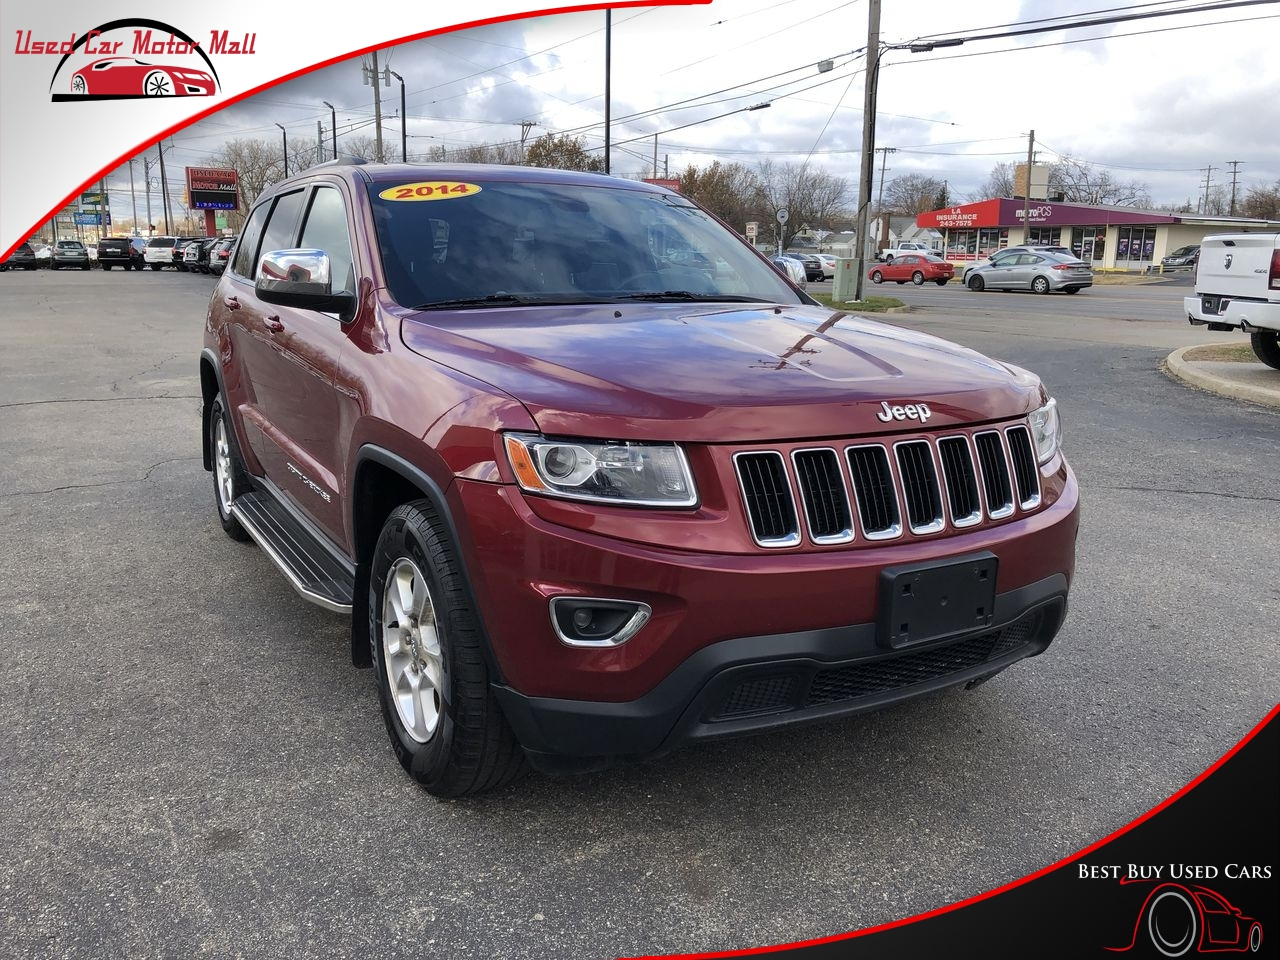 2014 Jeep Grand Cherokee Laredo, 148907, Photo 1